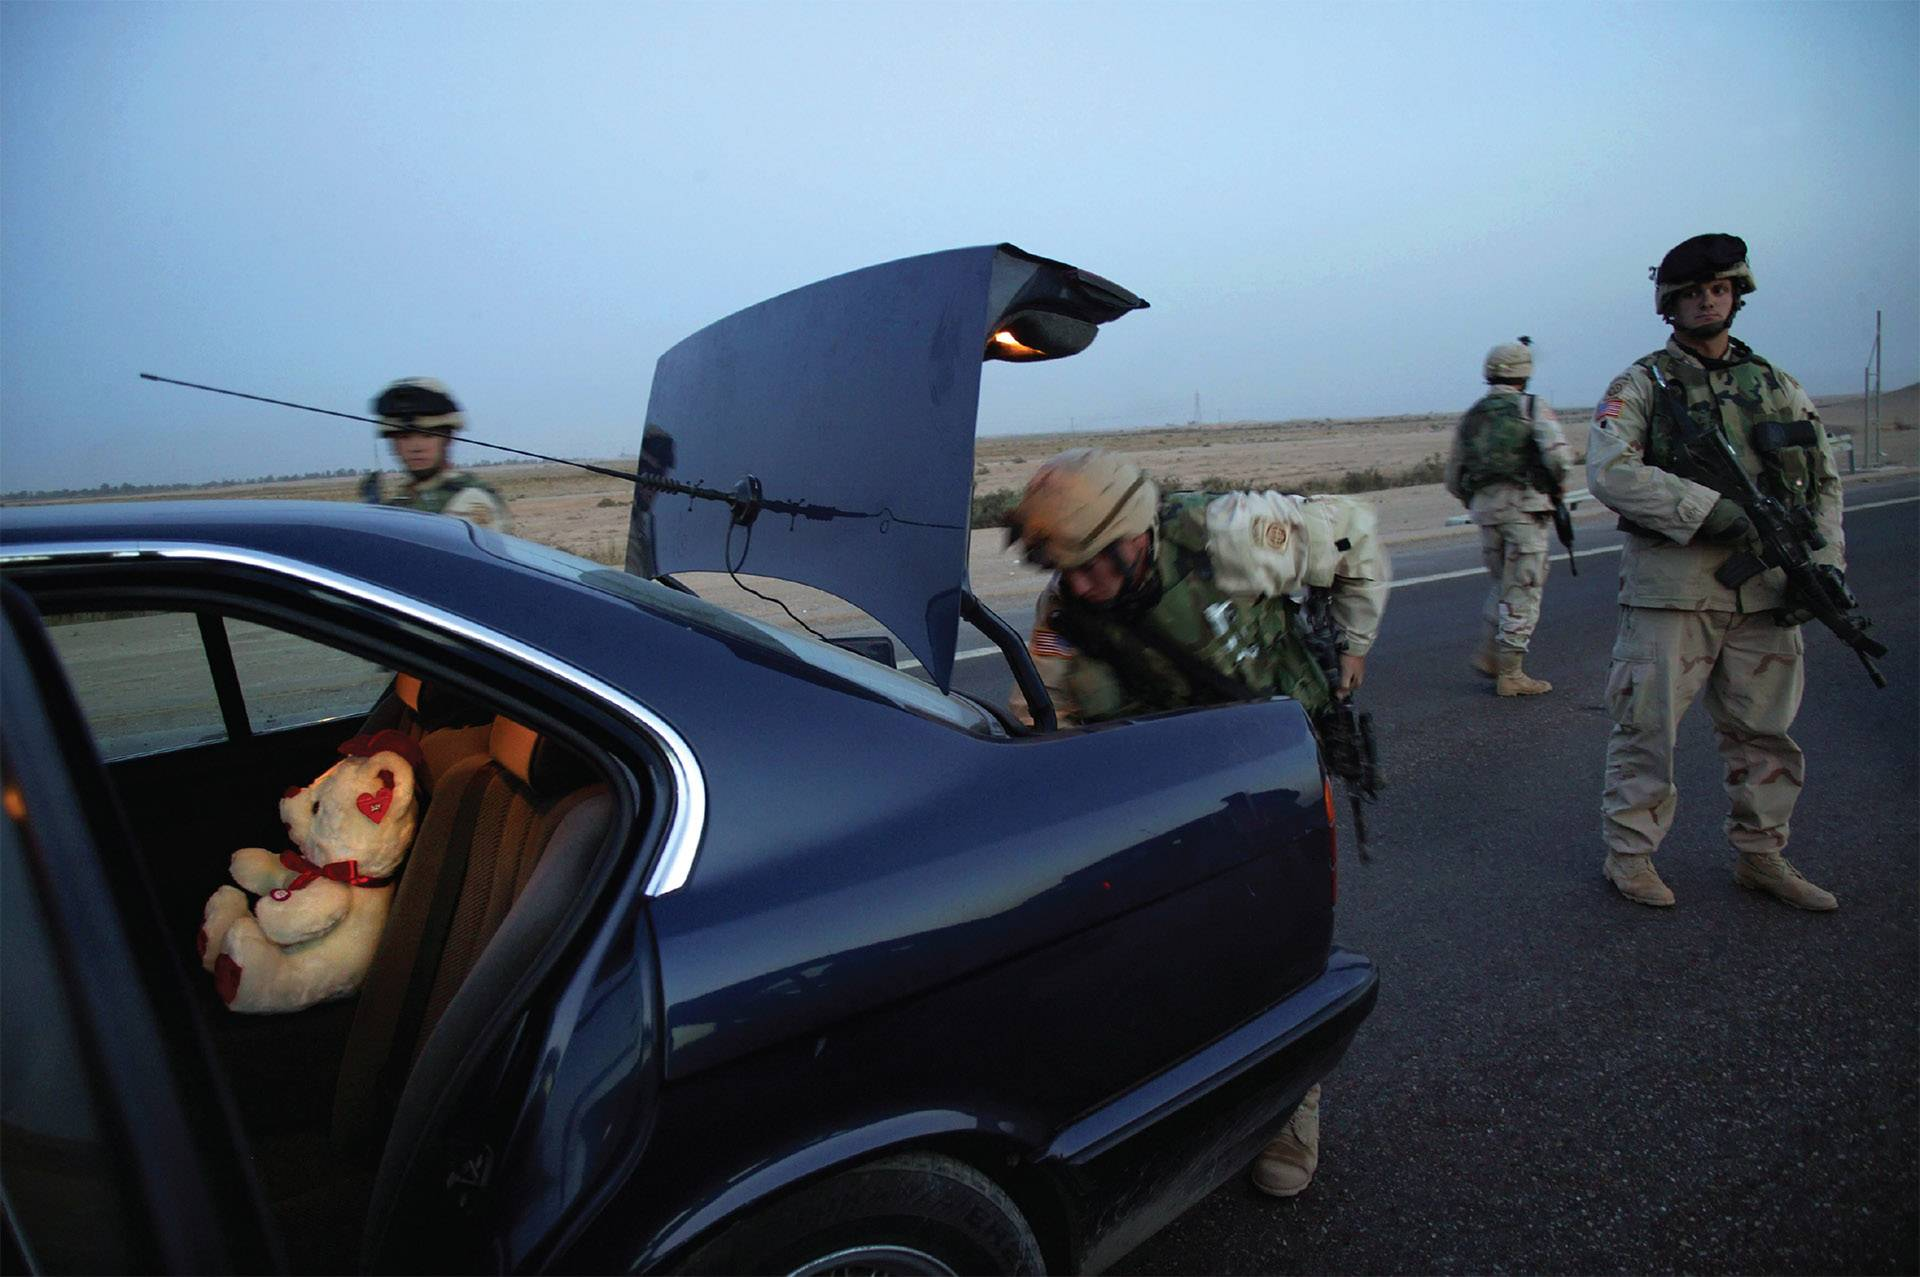 "In this photograph by Stephanie Sinclair, members of Charlie Company 1-505, 82nd Airborne Division, search a suspicious car during a mission to catch a loyalist of the late Iraqi dictator Saddam Hussein in Fallujah. It is part of an Elgin Community College exhibit, ""Collateral Damage: The Human Faces of War,"" featuring the work of four award-winning documentary photographers depicting the personal cost of war."